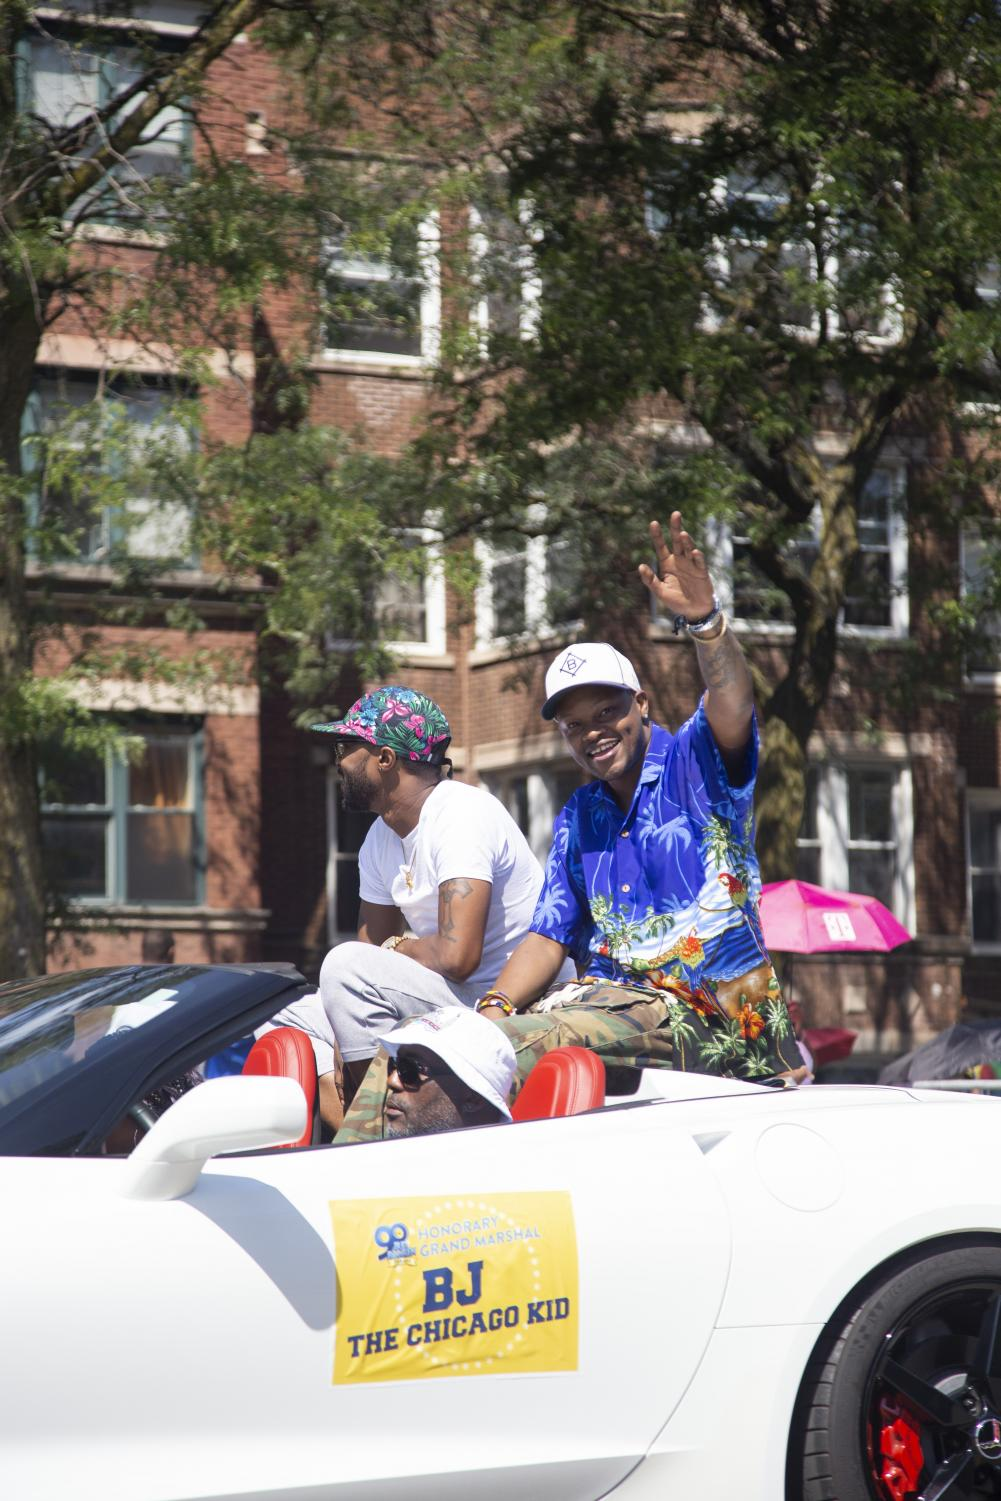 The+rapper+BJ+The+Chicago+Kid+at+the+Bud+Billiken+Parade.